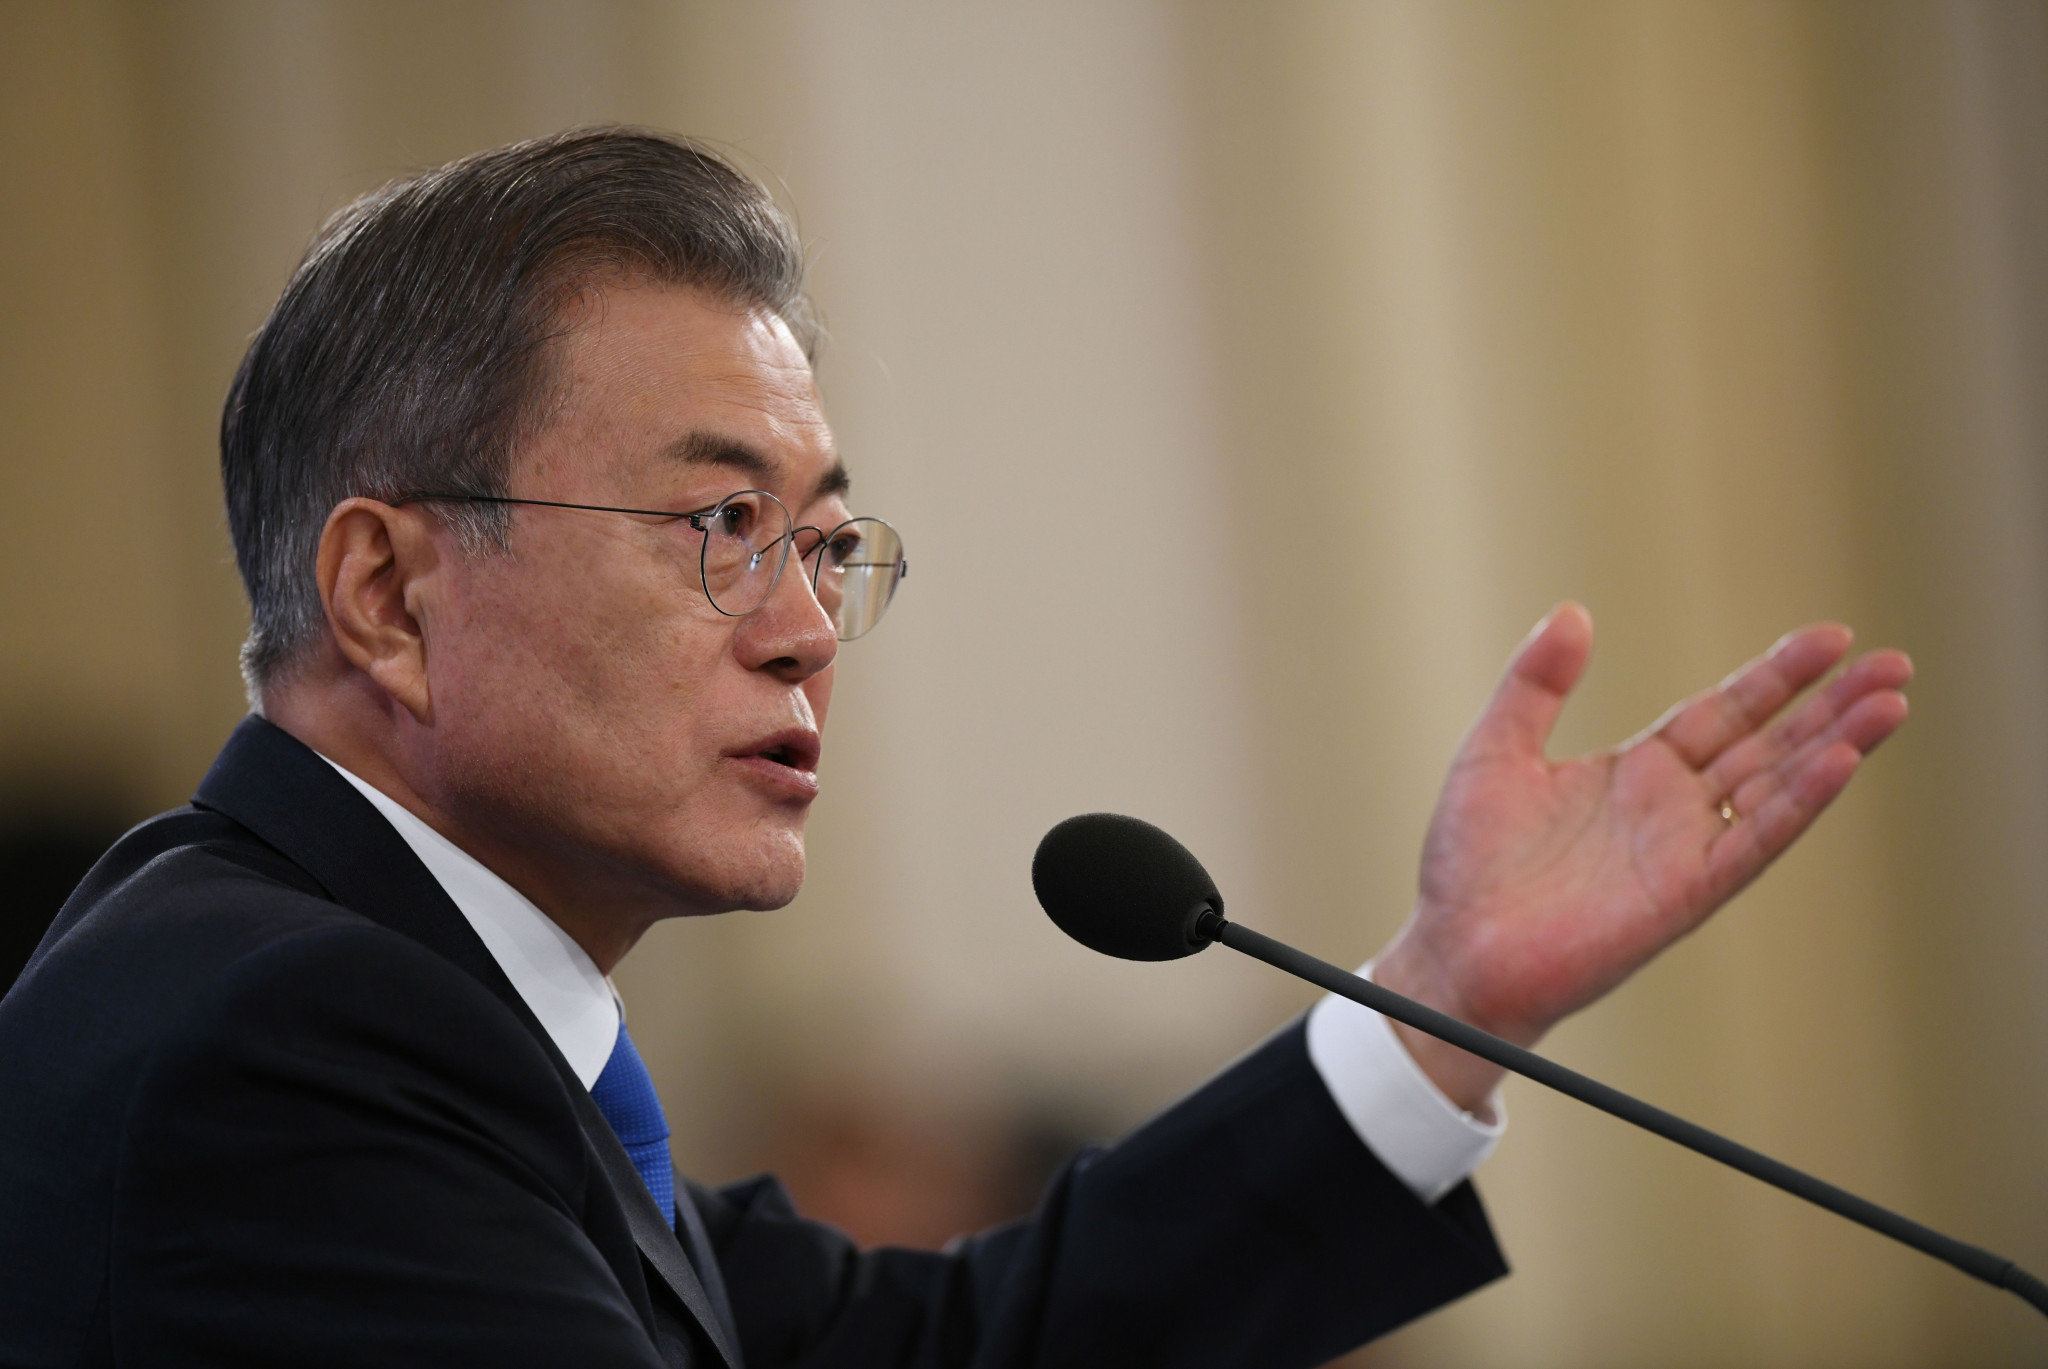 South Korean President Moon Jae-in has claimed violence and pressuring athletes cannot be justified ©Getty Images